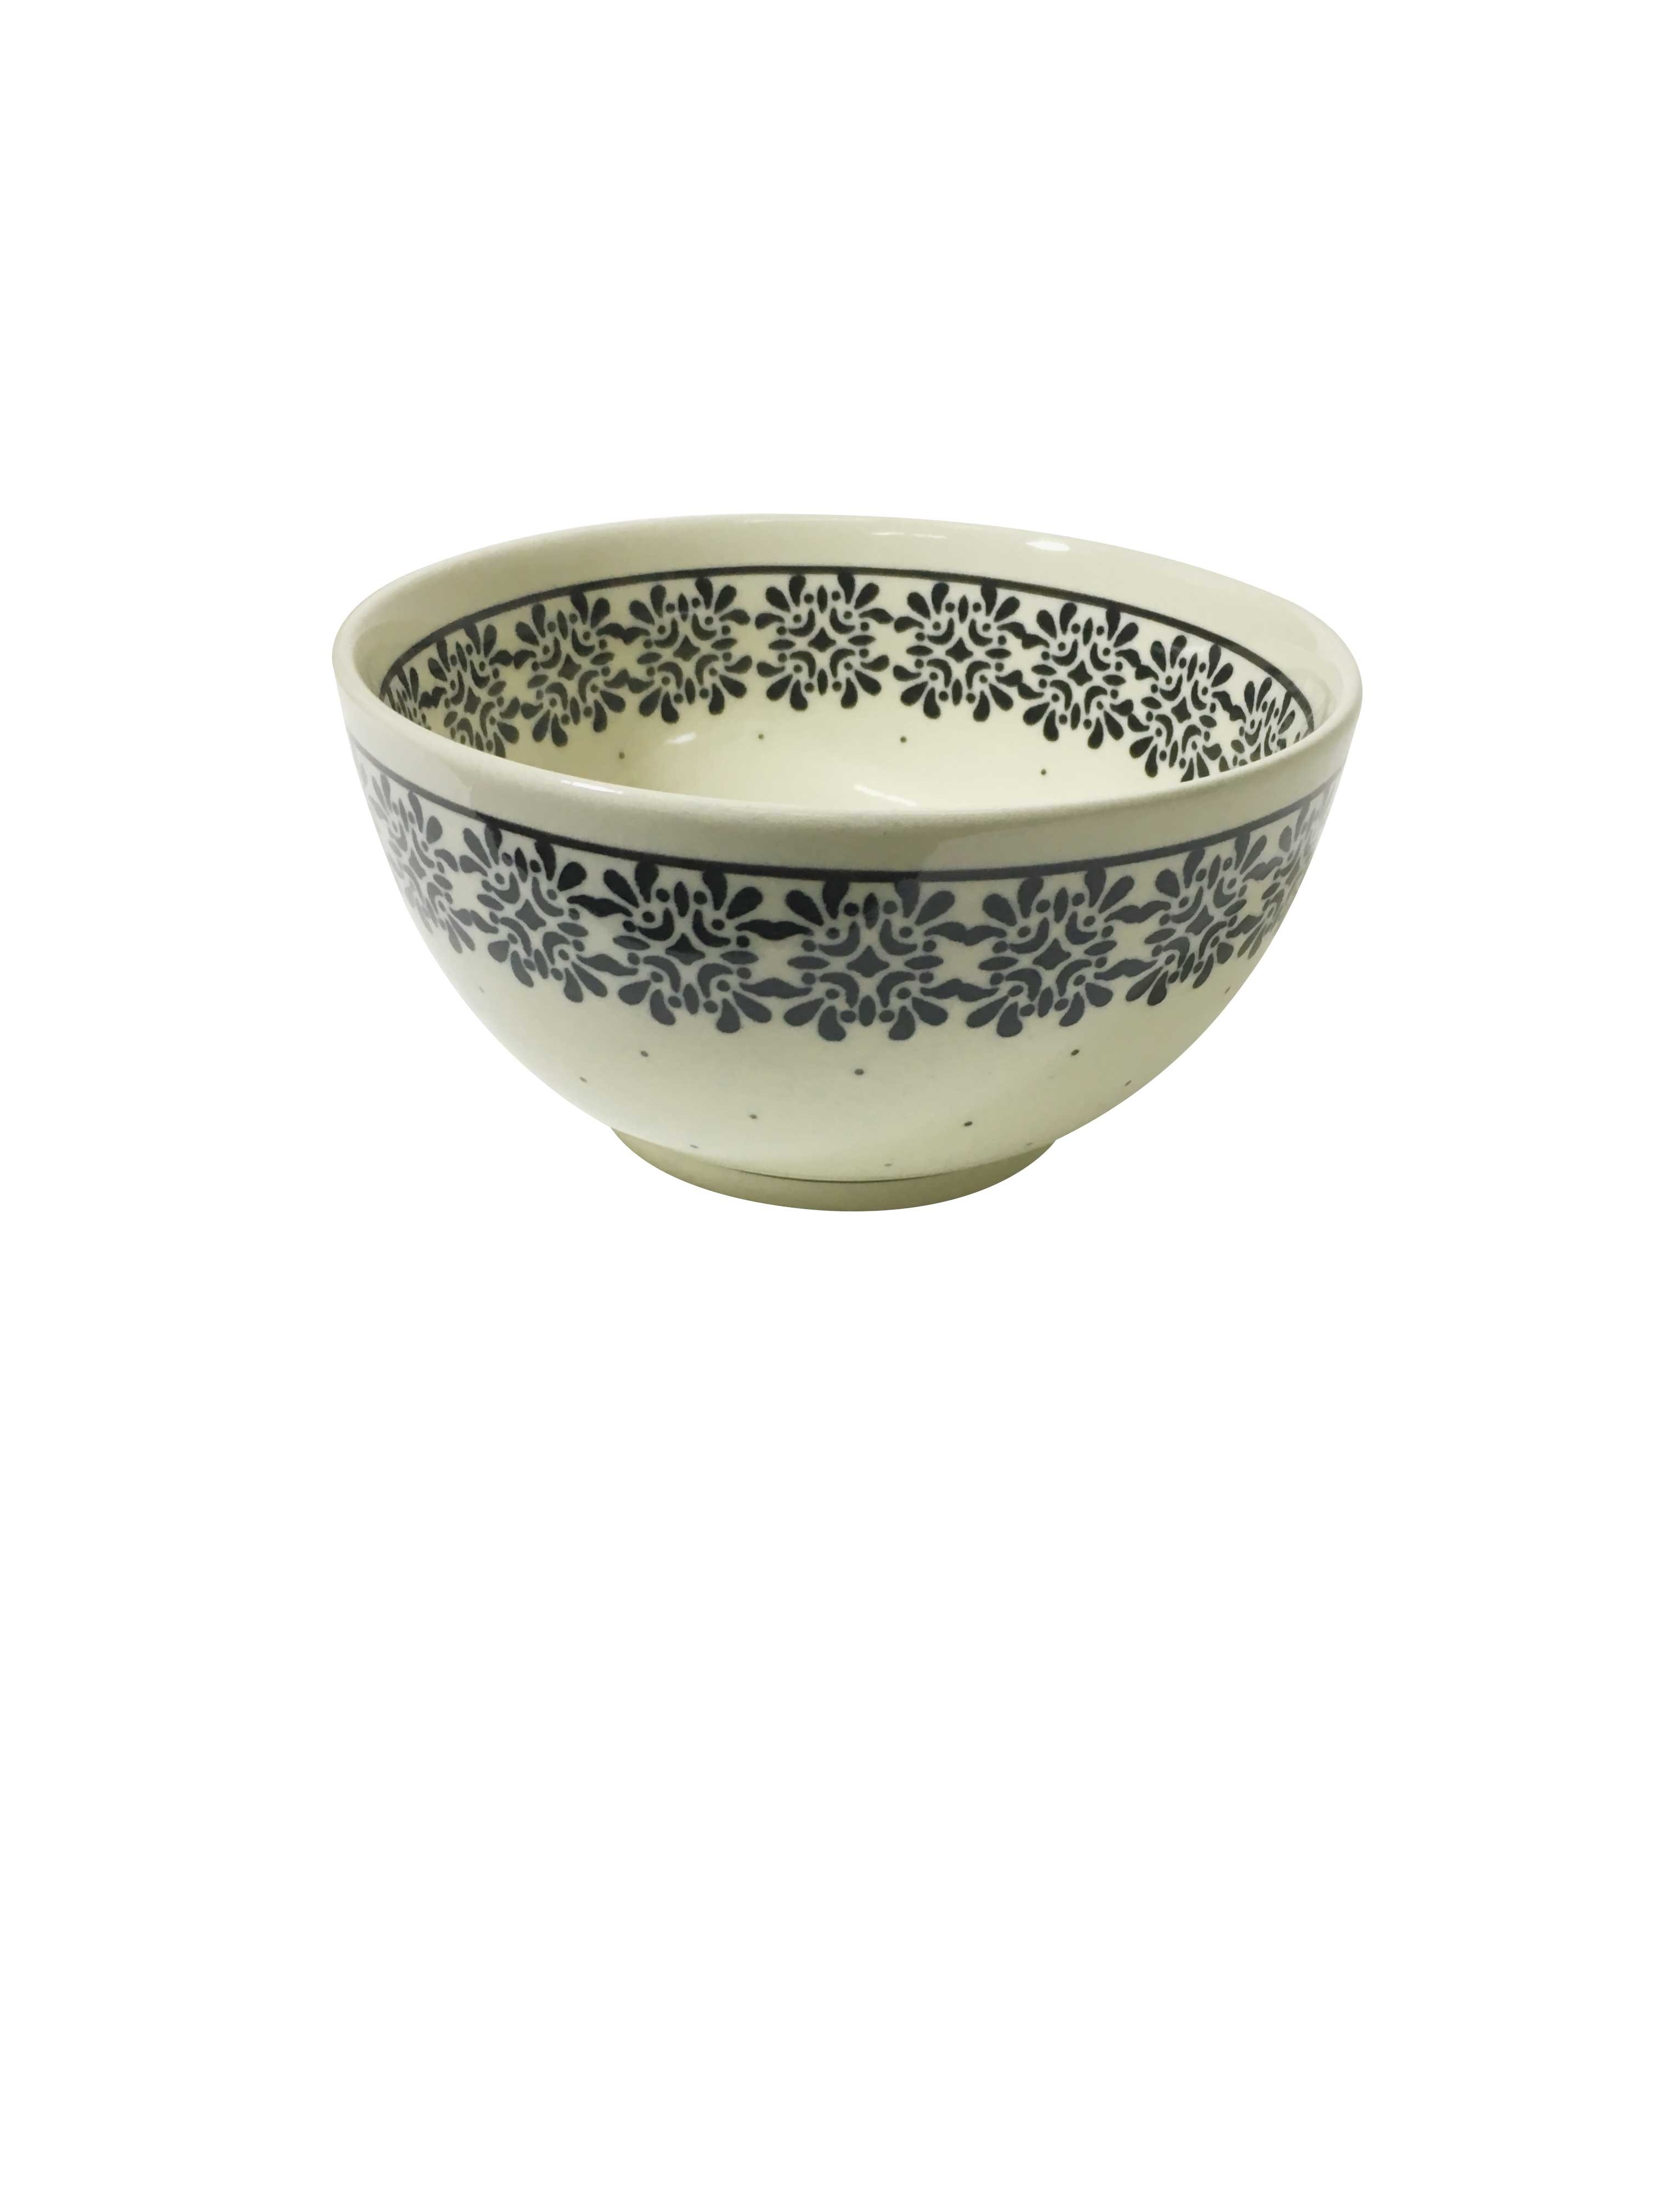 Pottery Avenue Trendy Times 2 cup Stoneware Cereal Bowl